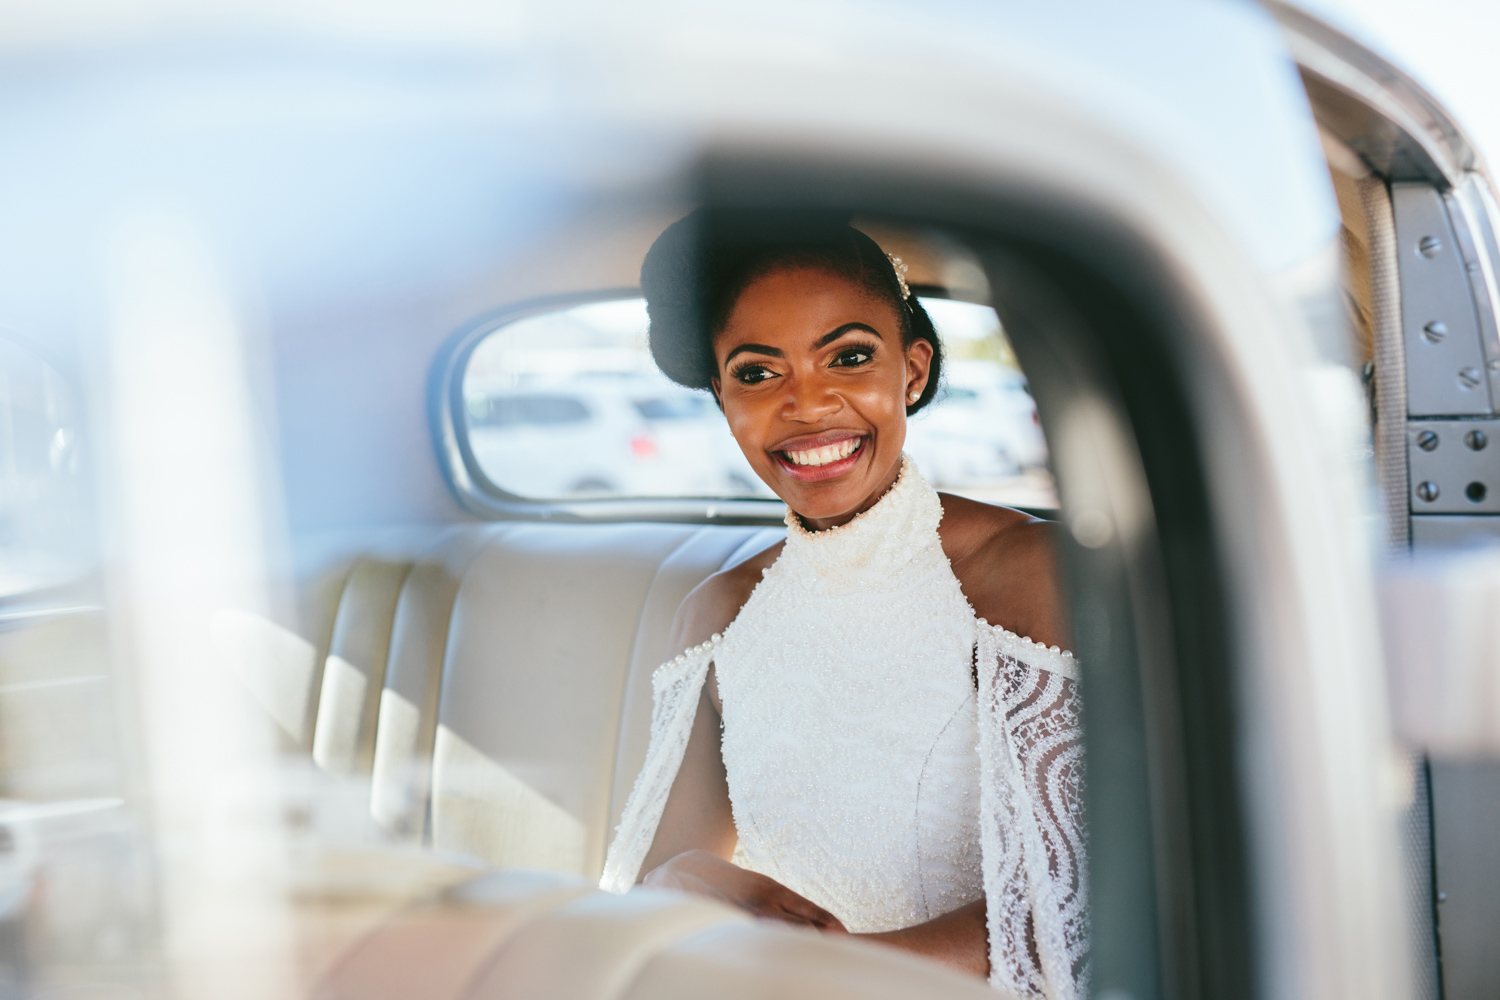 an image taken by Vividblue of the bride siting in the car and smiling by Val de Vie.